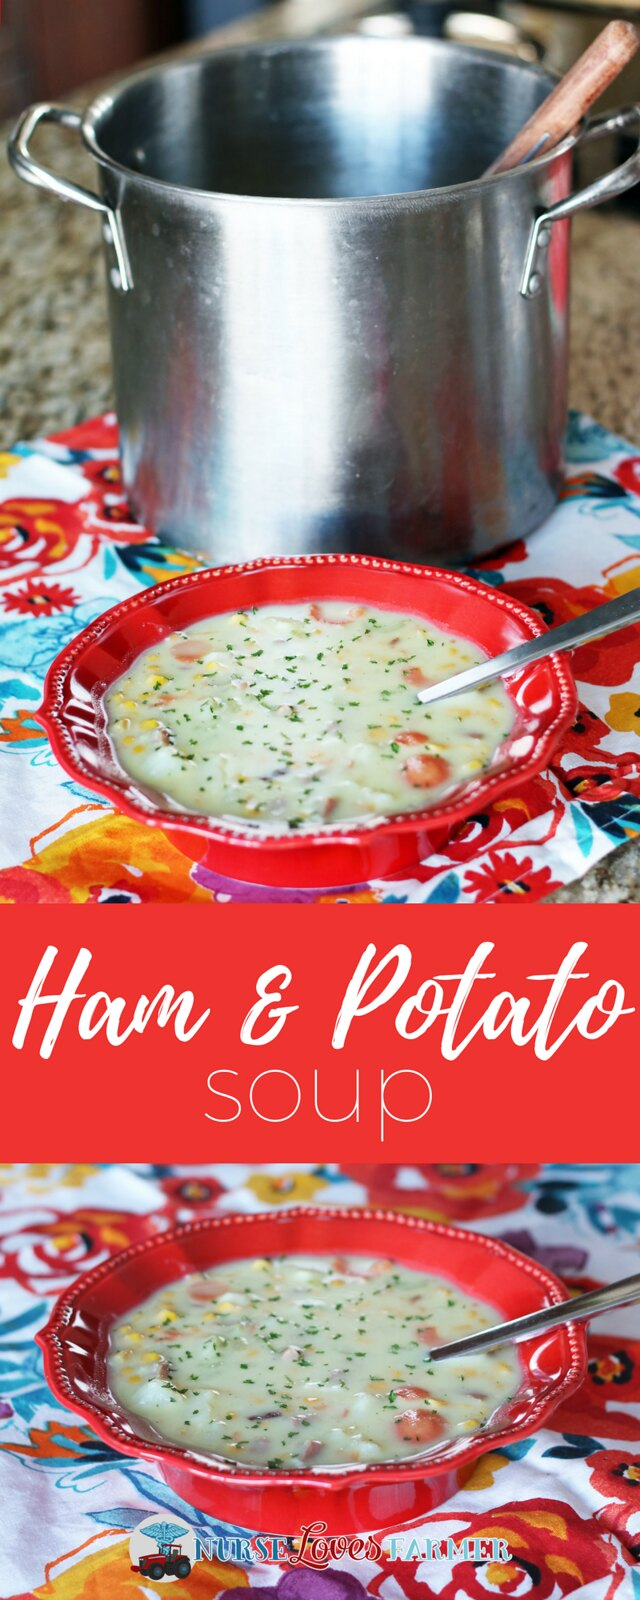 A hearty and delicious soup that is ready to eat in 45 minutes! Ham and potato soup that bursts with flavour and is full of vegetables.